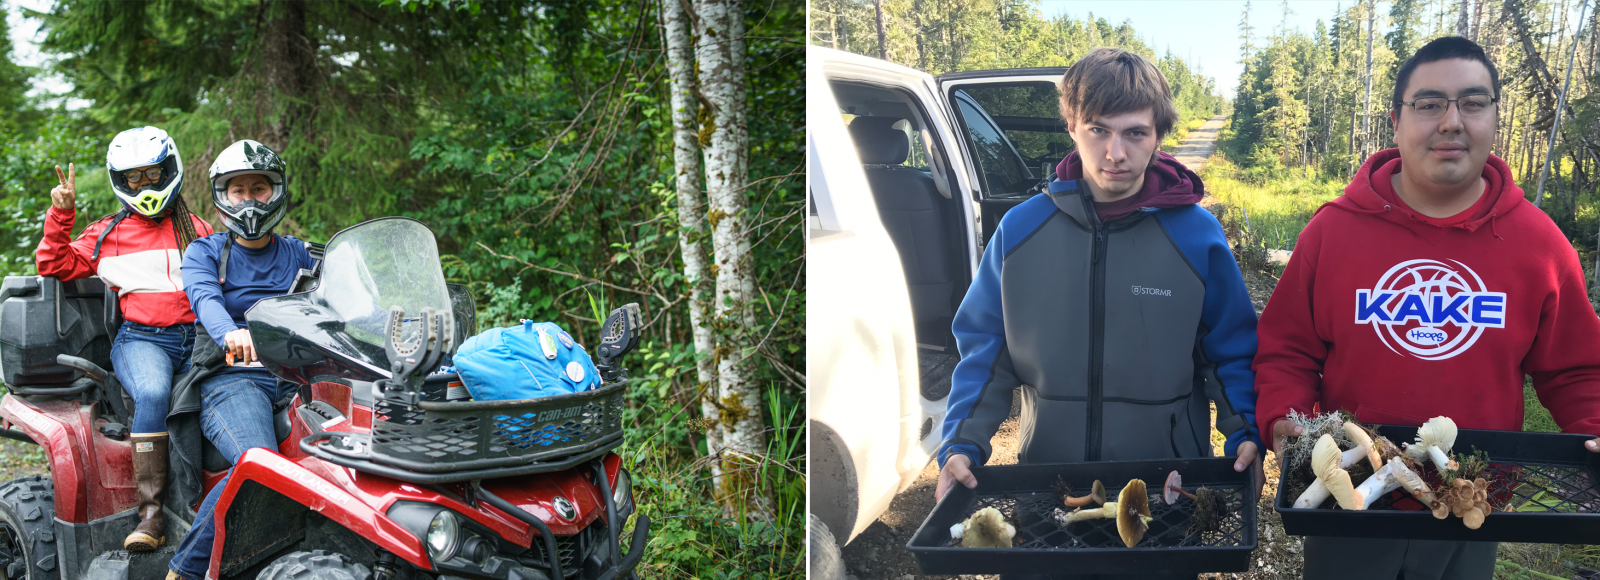 A diptych image. In the left side photo, a young woman drives an all-terrain vehicle, with a young woman in the passenger seat waving a peace sign with her hand. Their faces are mostly obscured by helmets. In the right image, two male youth face toward the camera carrying plastic trays of foraged mushrooms. They are next to a white truck.